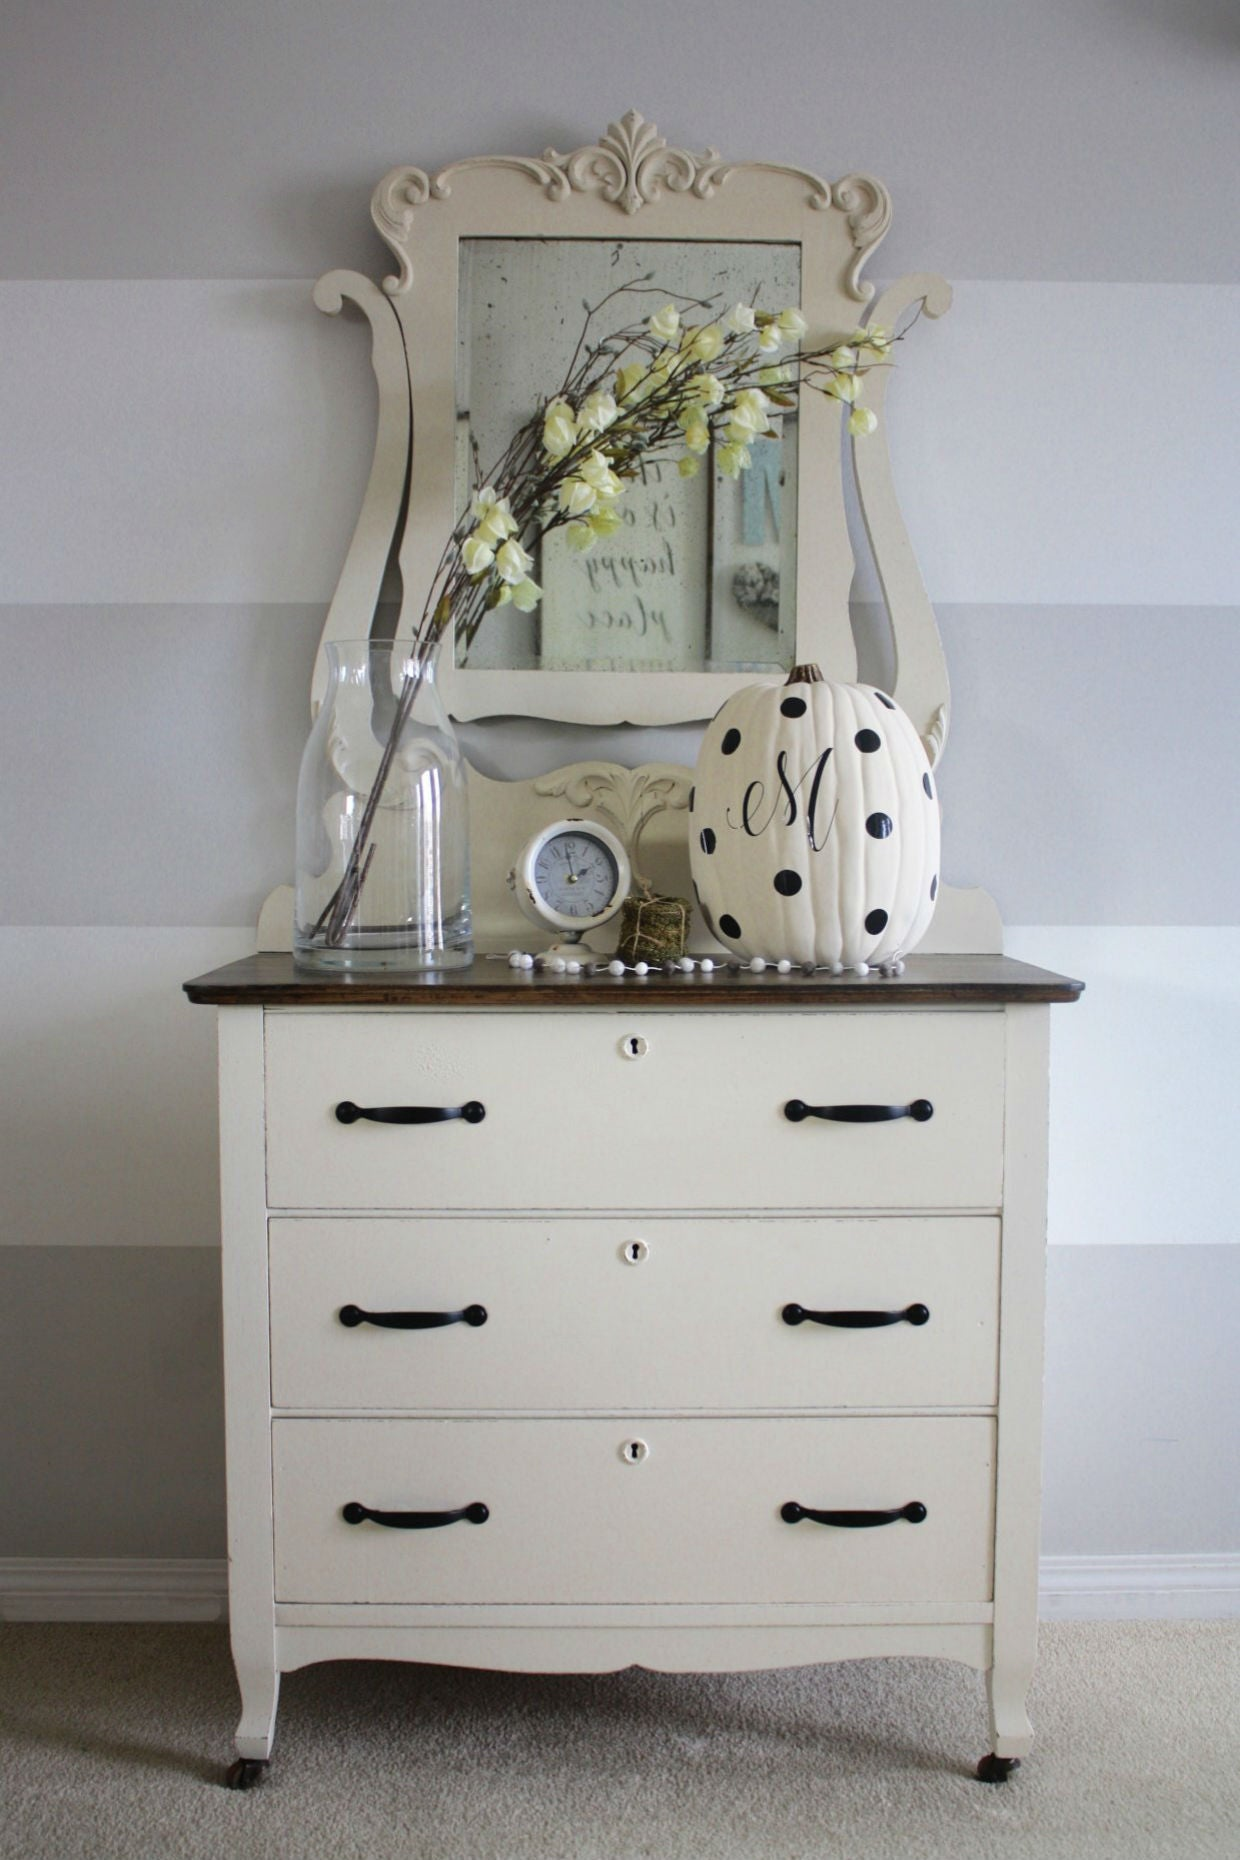 shabby chic cream white dresser painted with eco-friendly DIY furniture paint by Country Chic Paint